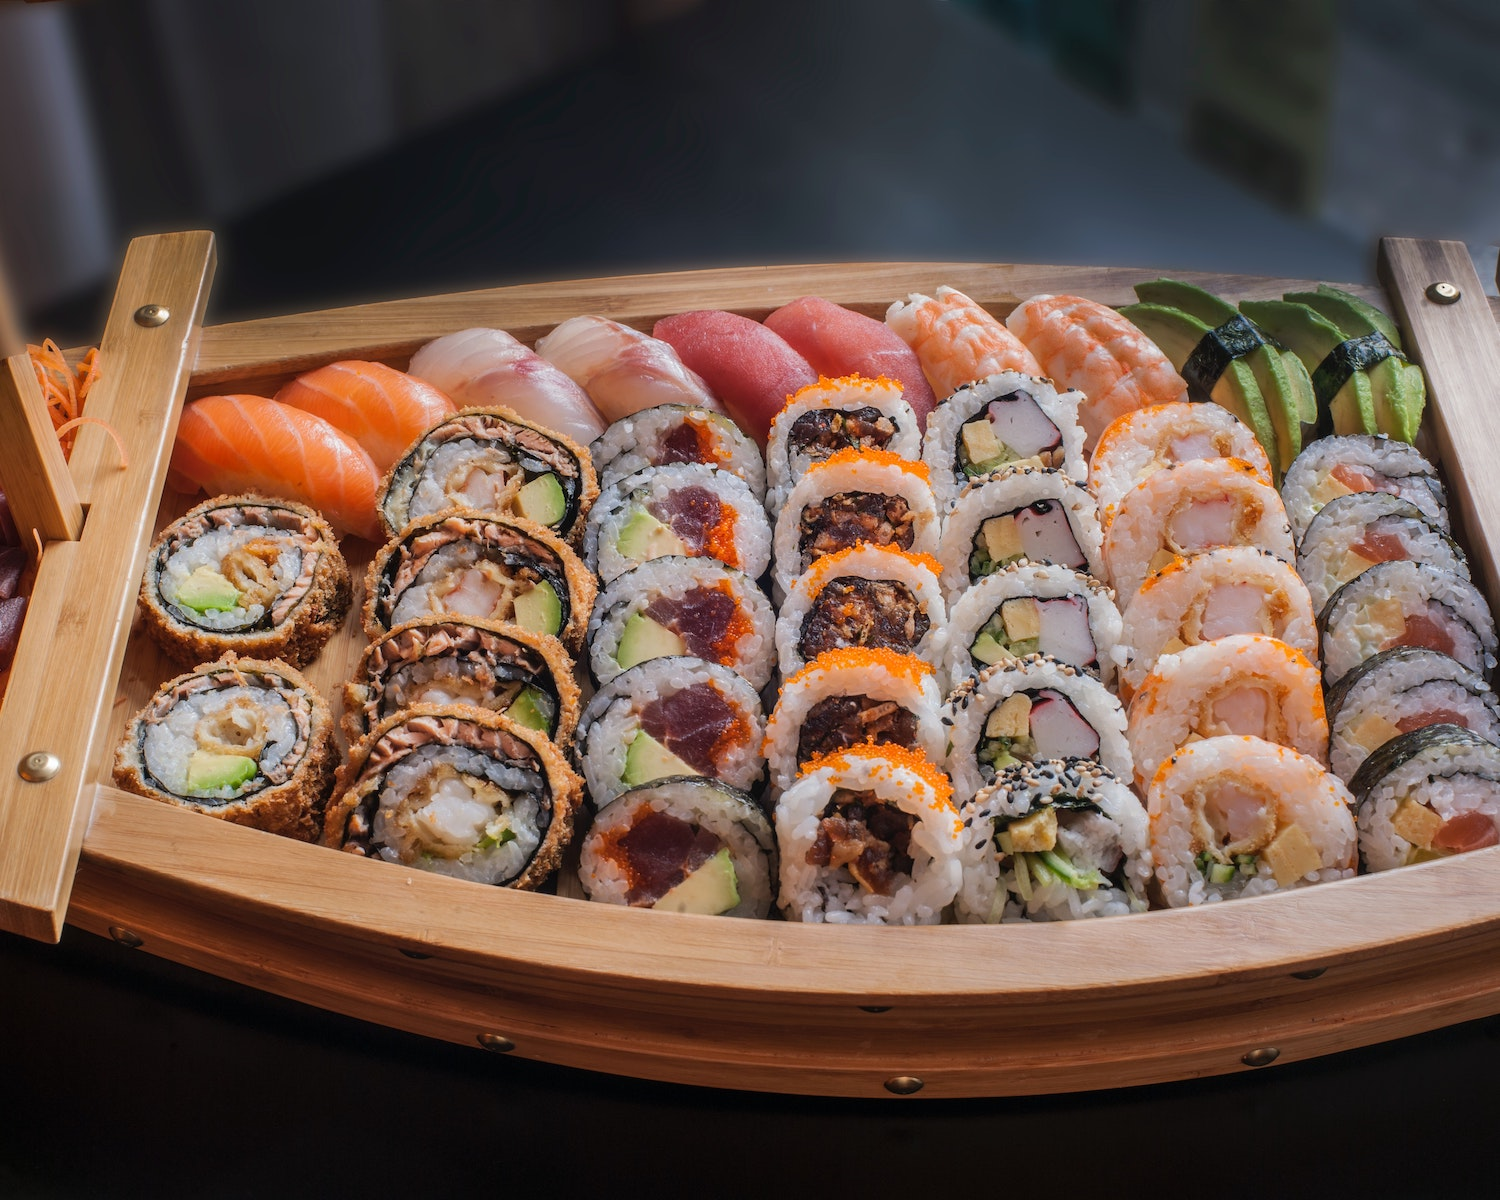 DeFi AMM SushiSwap Builds on Avalanche as Part of $180M Incentive Program